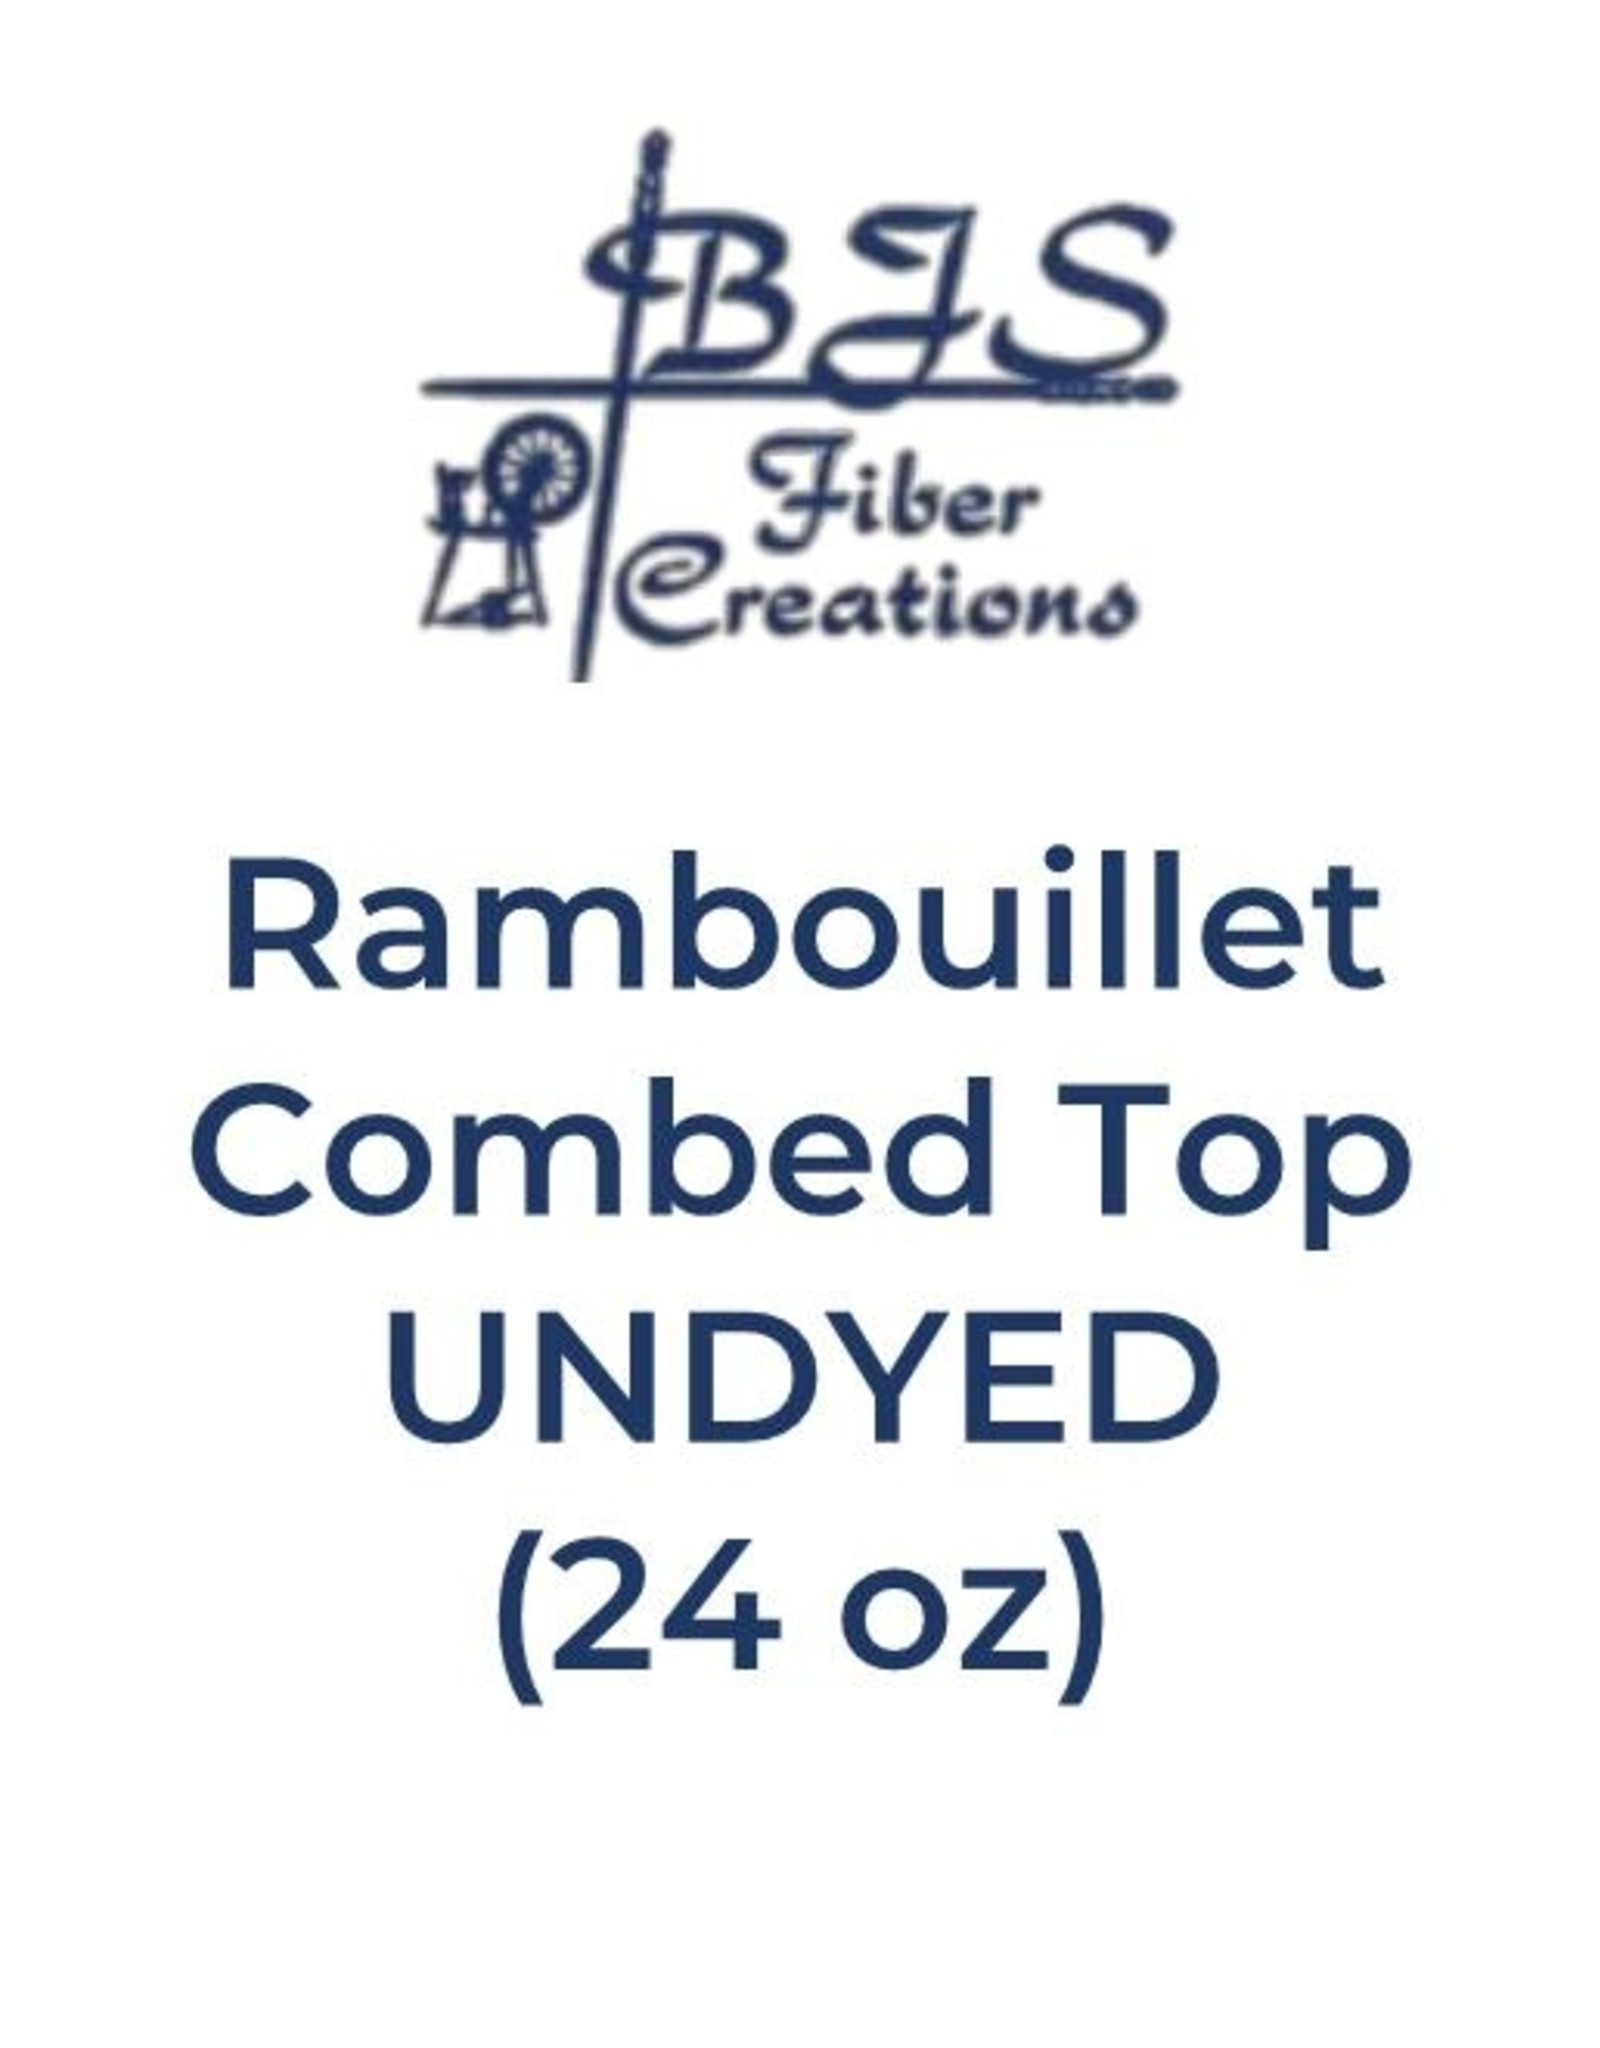 BJS Trunk Show Rambouillet Combed Top (24 oz) UNDYED